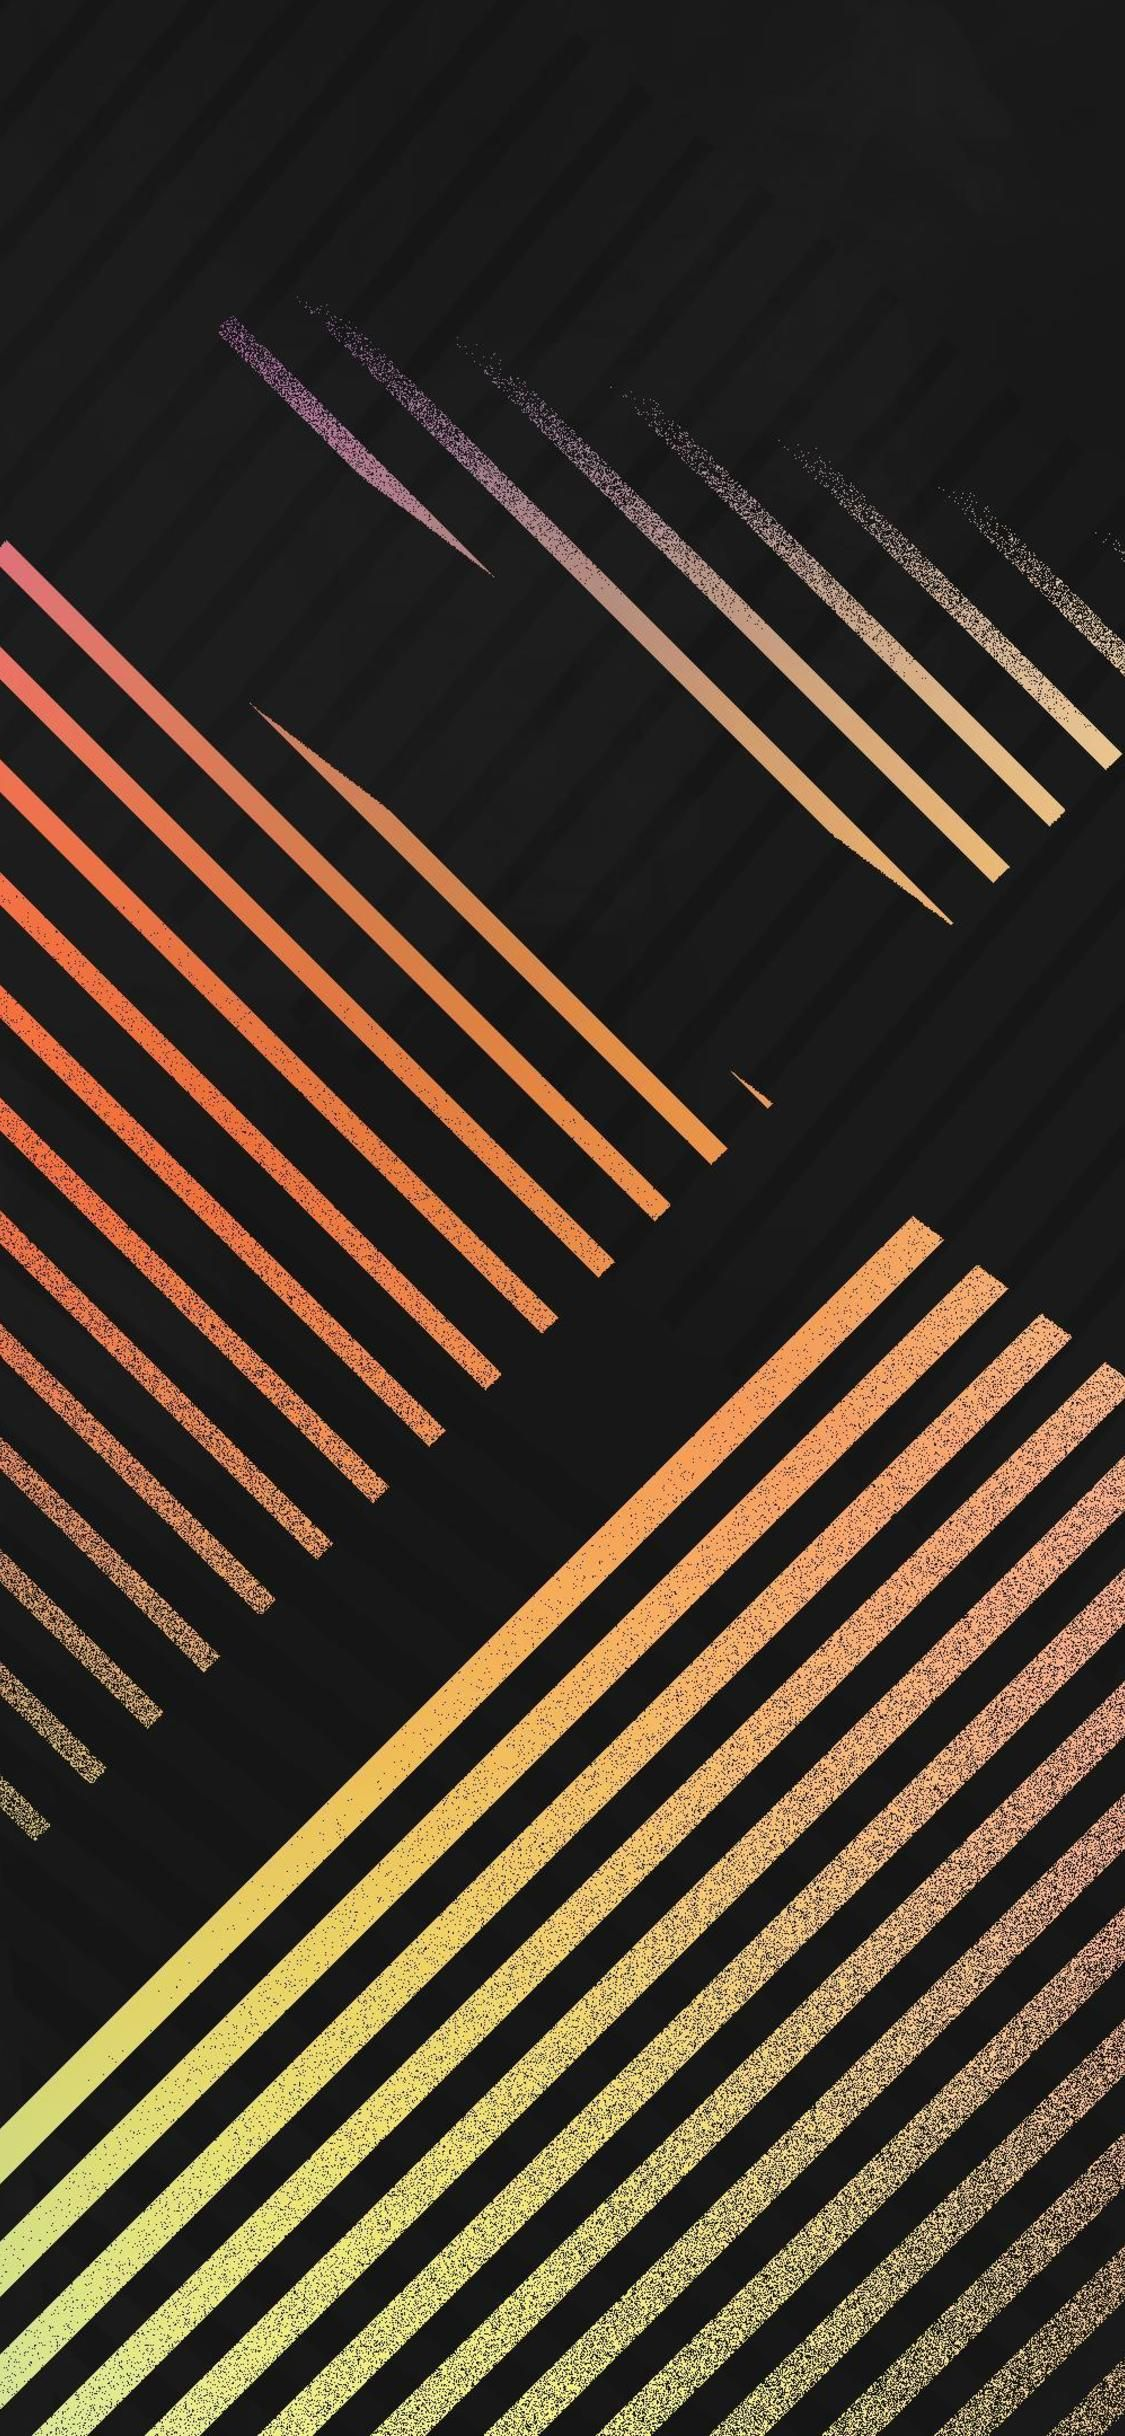 Abstract Lines Shapes 4k In 1125x2436 Resolution Abstract Lines